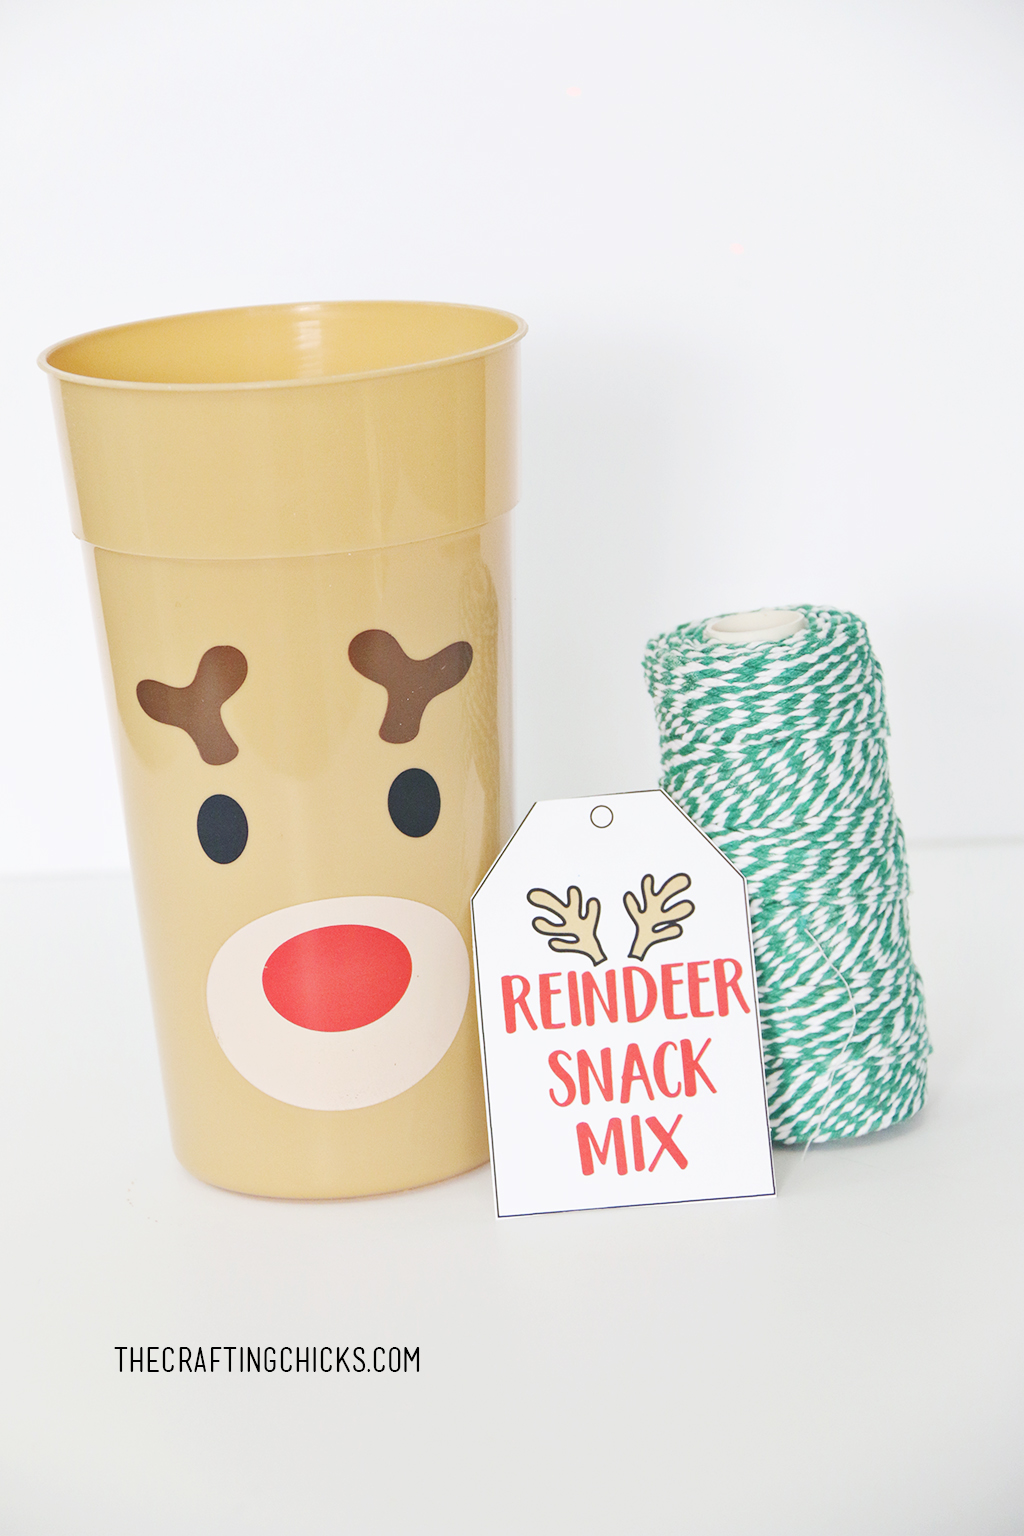 Reindeer tumbler cup with gift tag and green bakers twine.